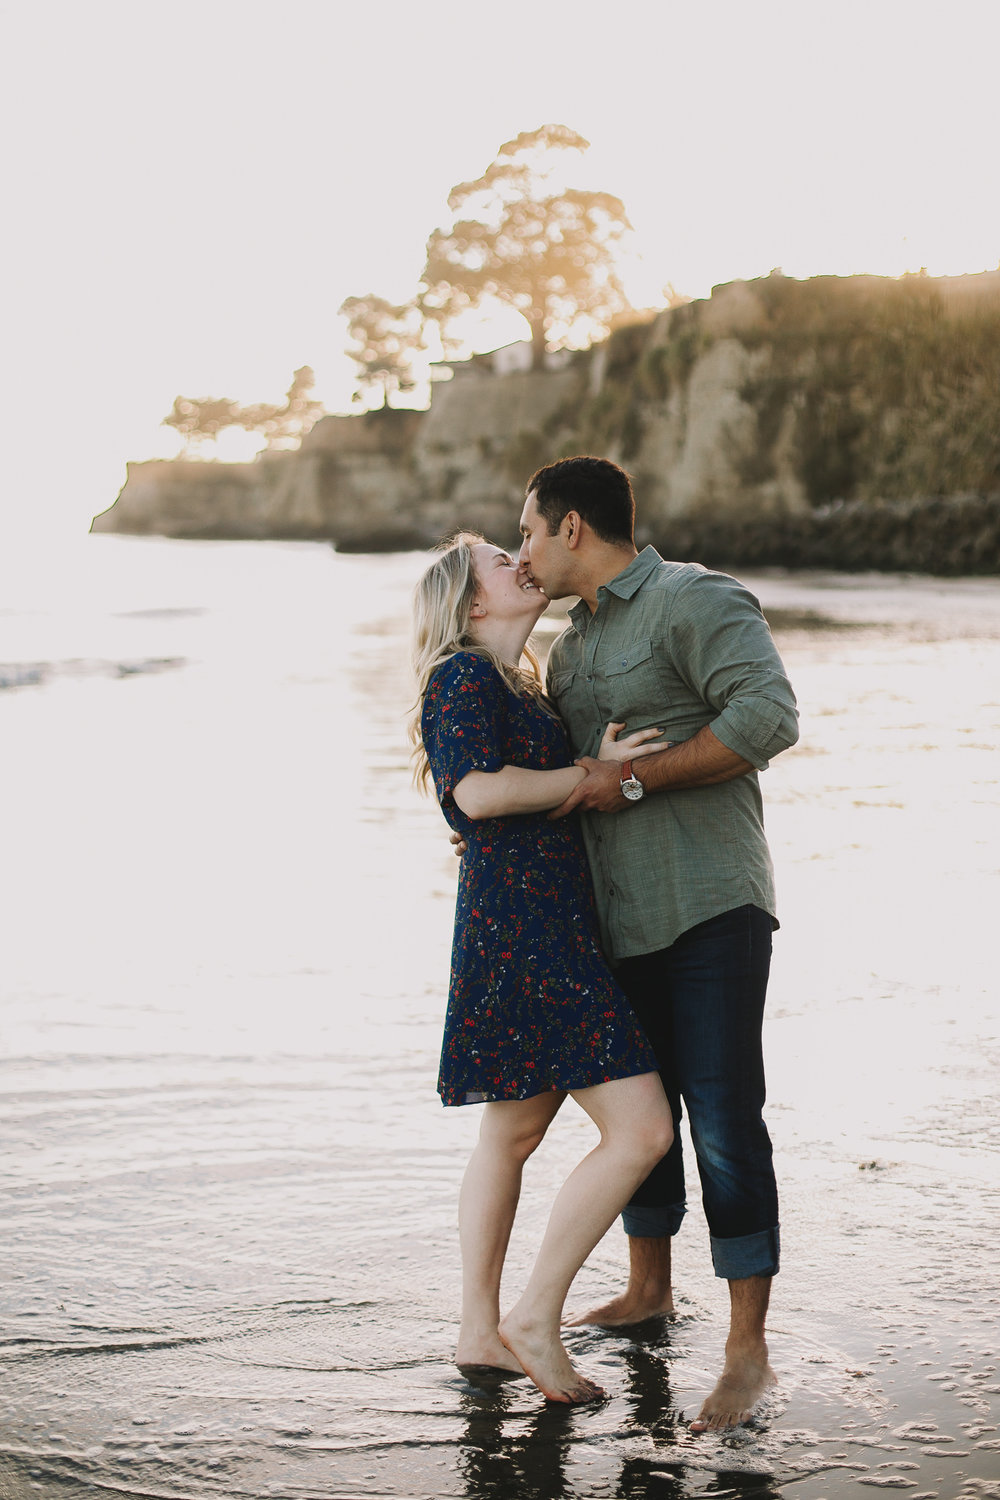 Archer Inspired Photography Capitola Beach Santa Cruz Wedding Engagement Lifestyle Session Photographer-90.jpg